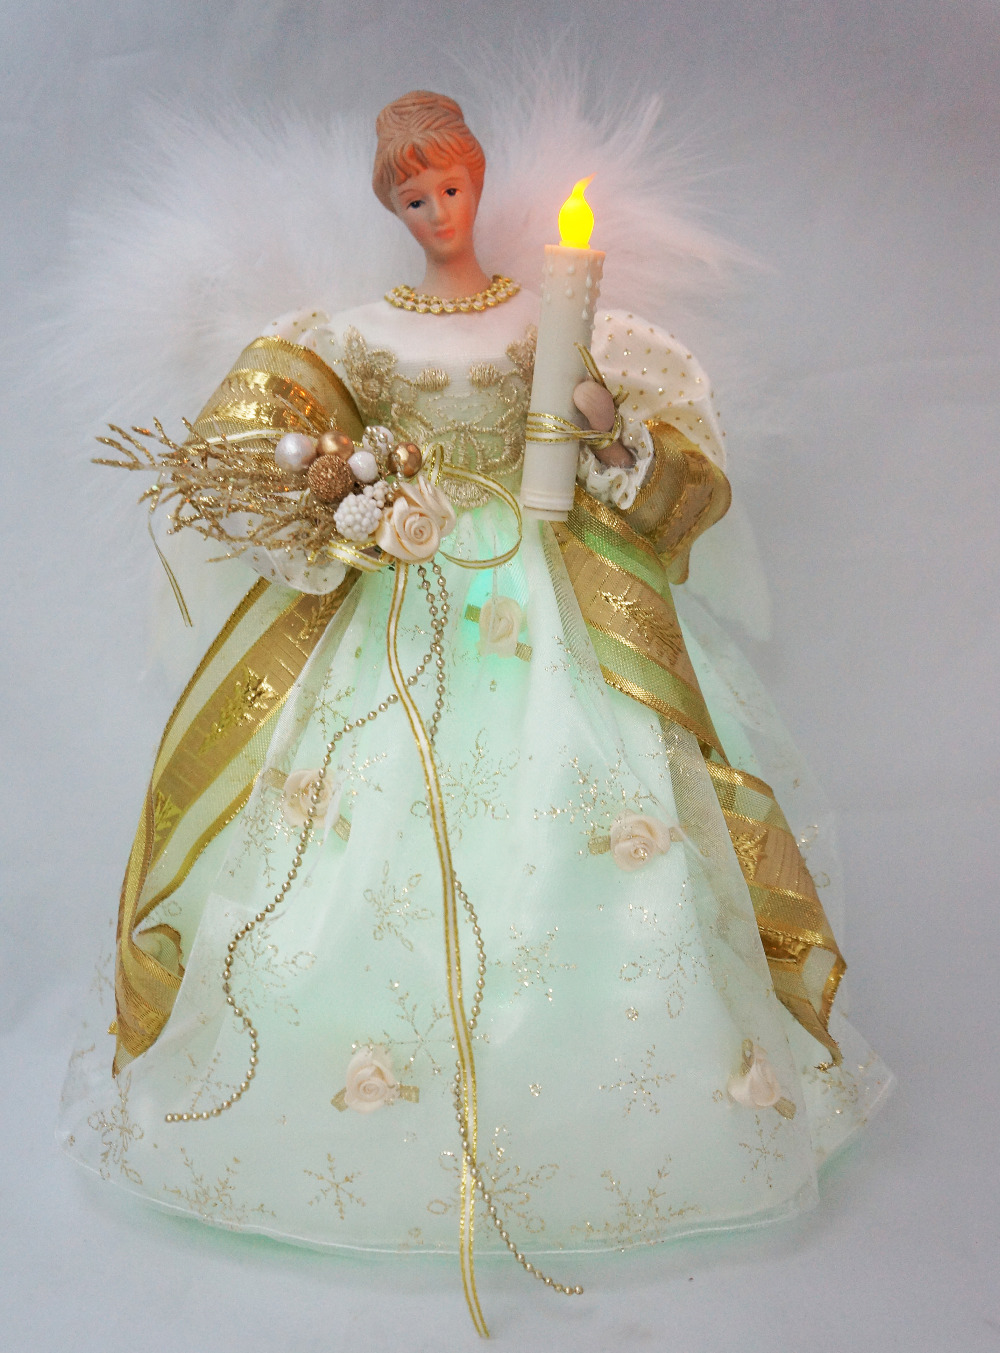 cosette christmas light angel tree topper porcelain doll timed ornament 12 inches 30 cm height - 12 Inch Christmas Tree